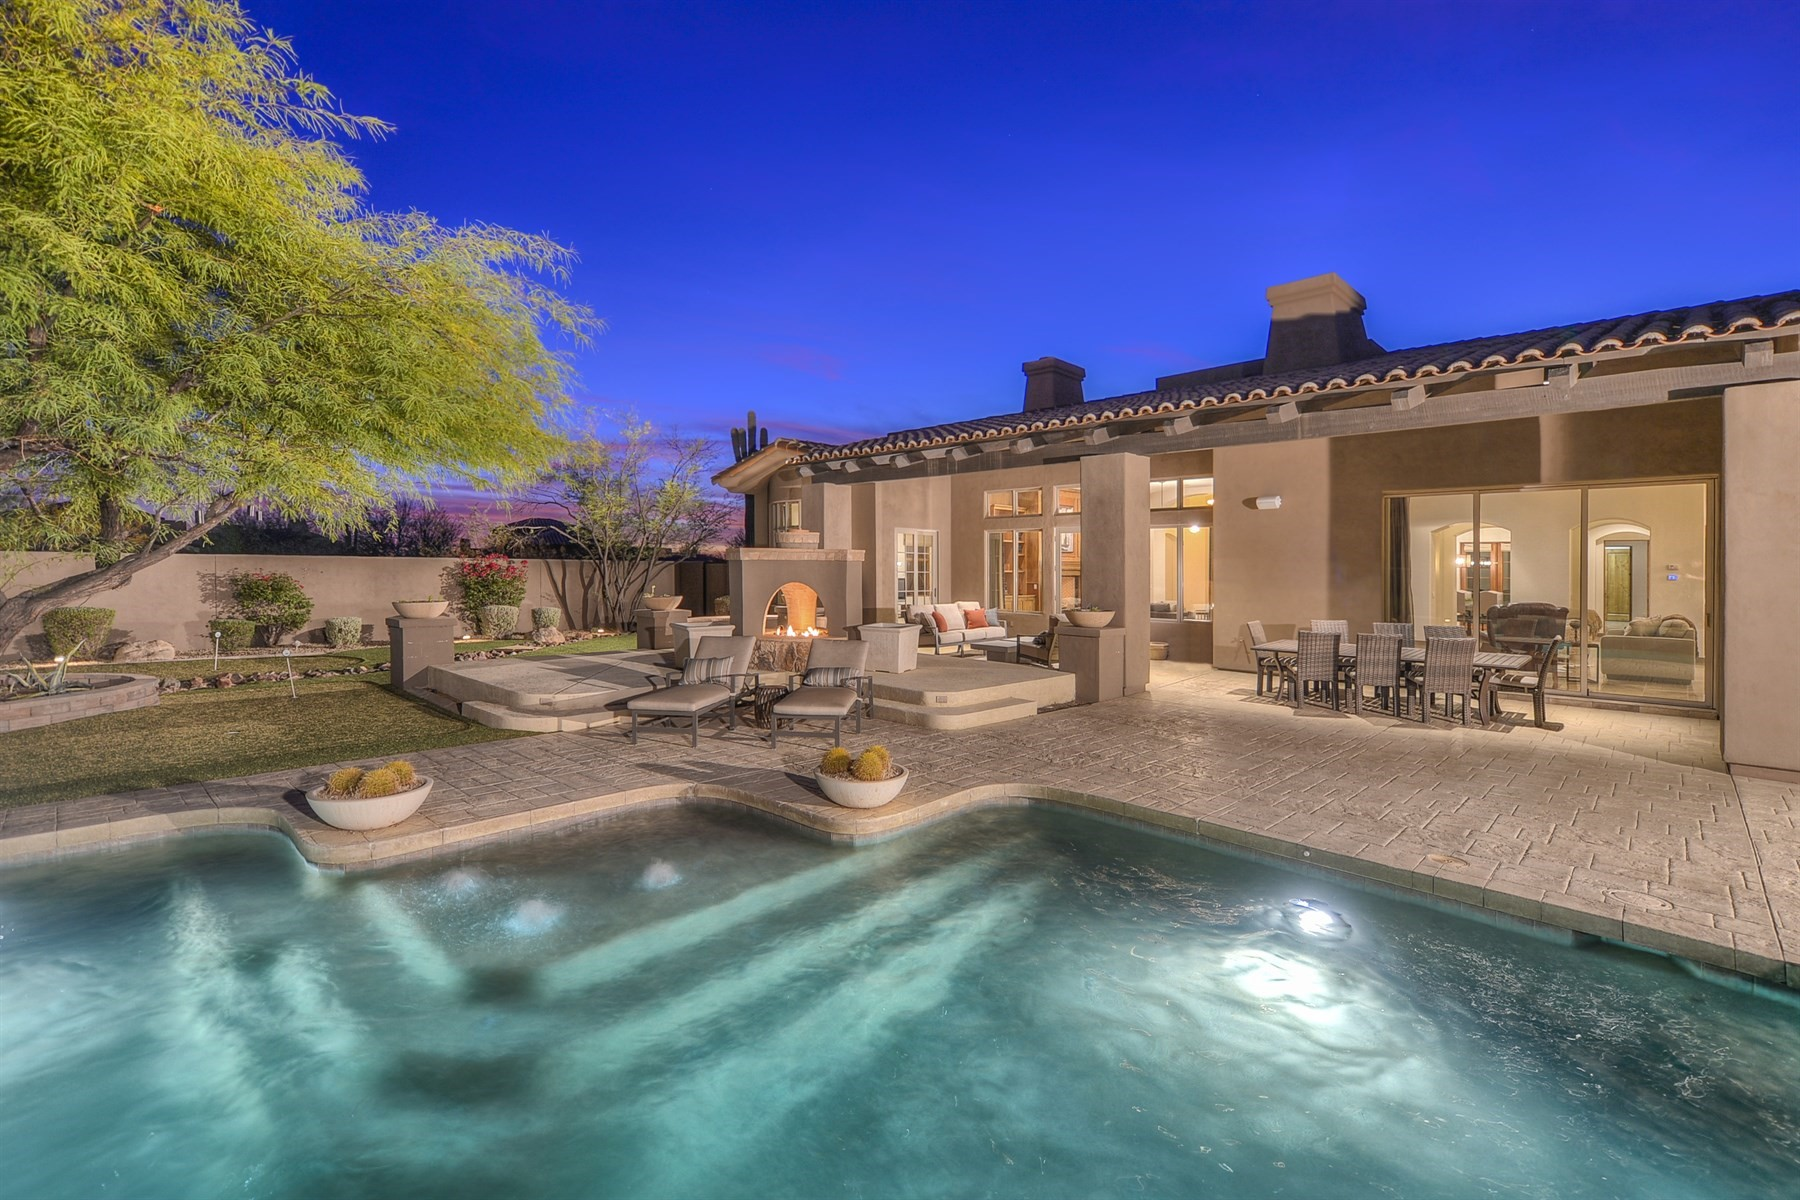 Single Family Home for Sale at Serenity at Grayhawk in Scottsdale 21797 N 82ND PLACE, Scottsdale, Arizona, 85255 United States